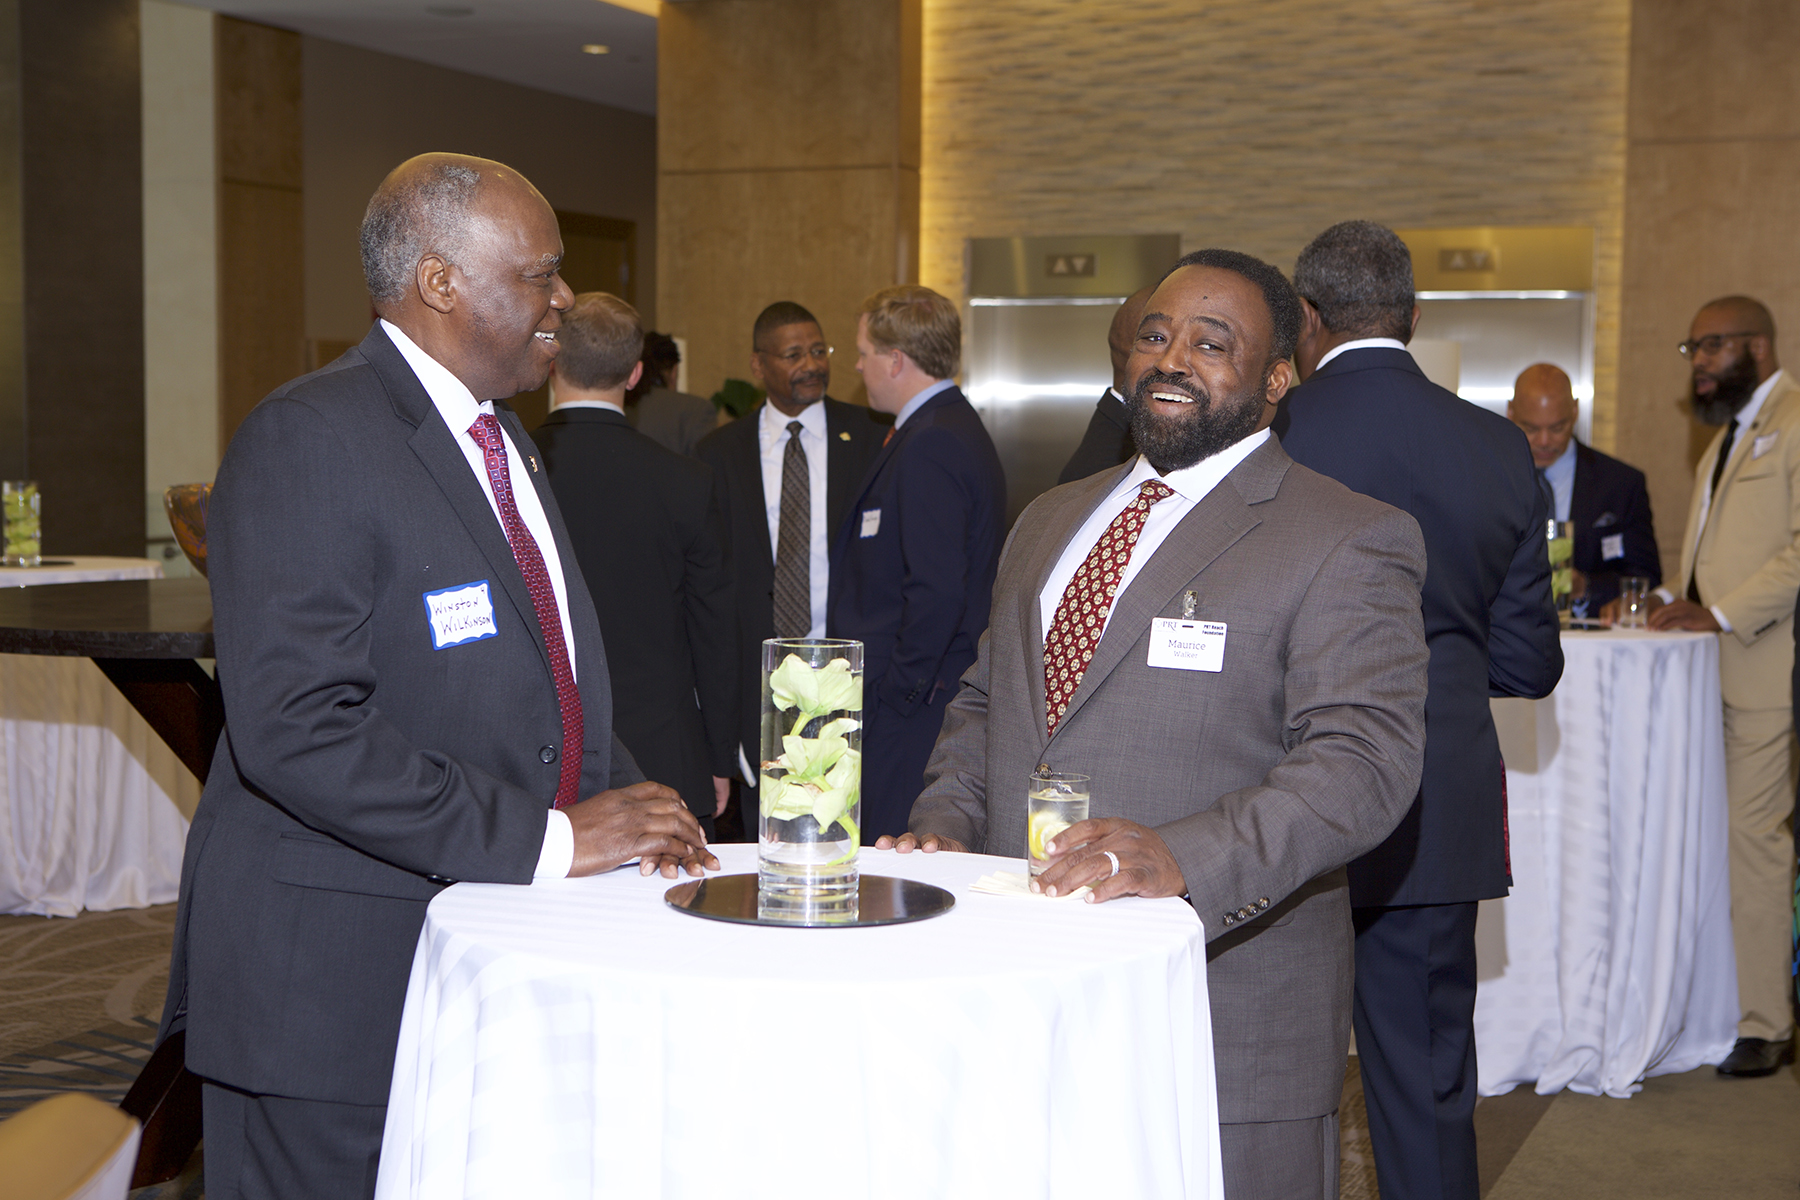 Maurice Walker (PRT Member - Birch Advisors) and Winston Wilkinson